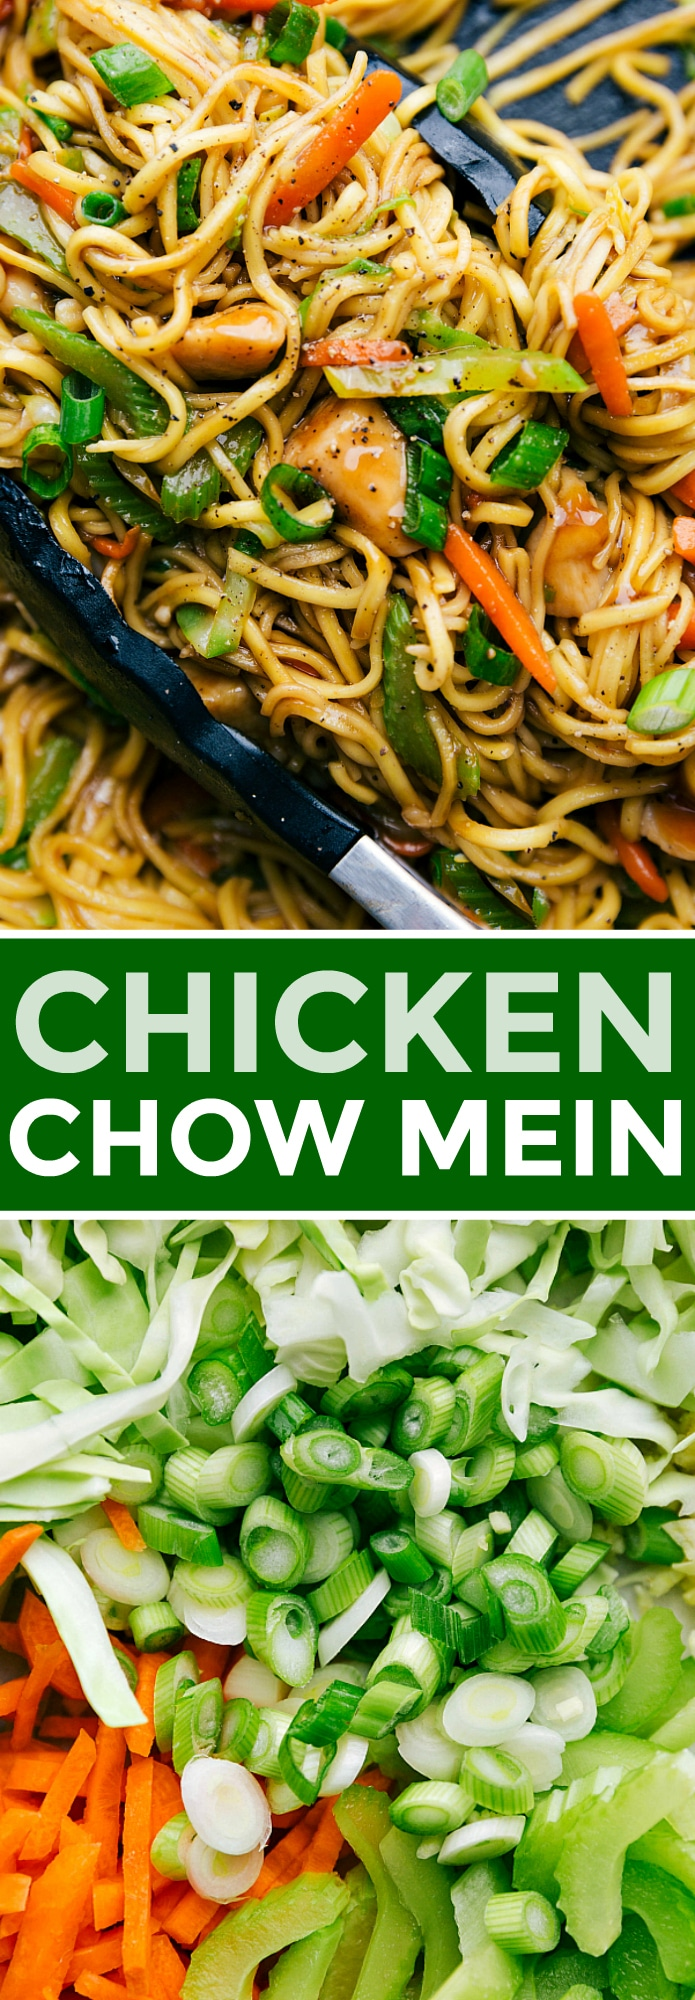 Easy 30-minute chicken chow mein with tender chicken bites, plenty of veggies, and an addictive savory sauce coating it all. Today I'm sharing all my tips and tricks for how to make chicken chow mein BETTER than takeout! This is sure to be a hit! Recipe via chelseasmessyapron #eay #chinese #best #withcabbage